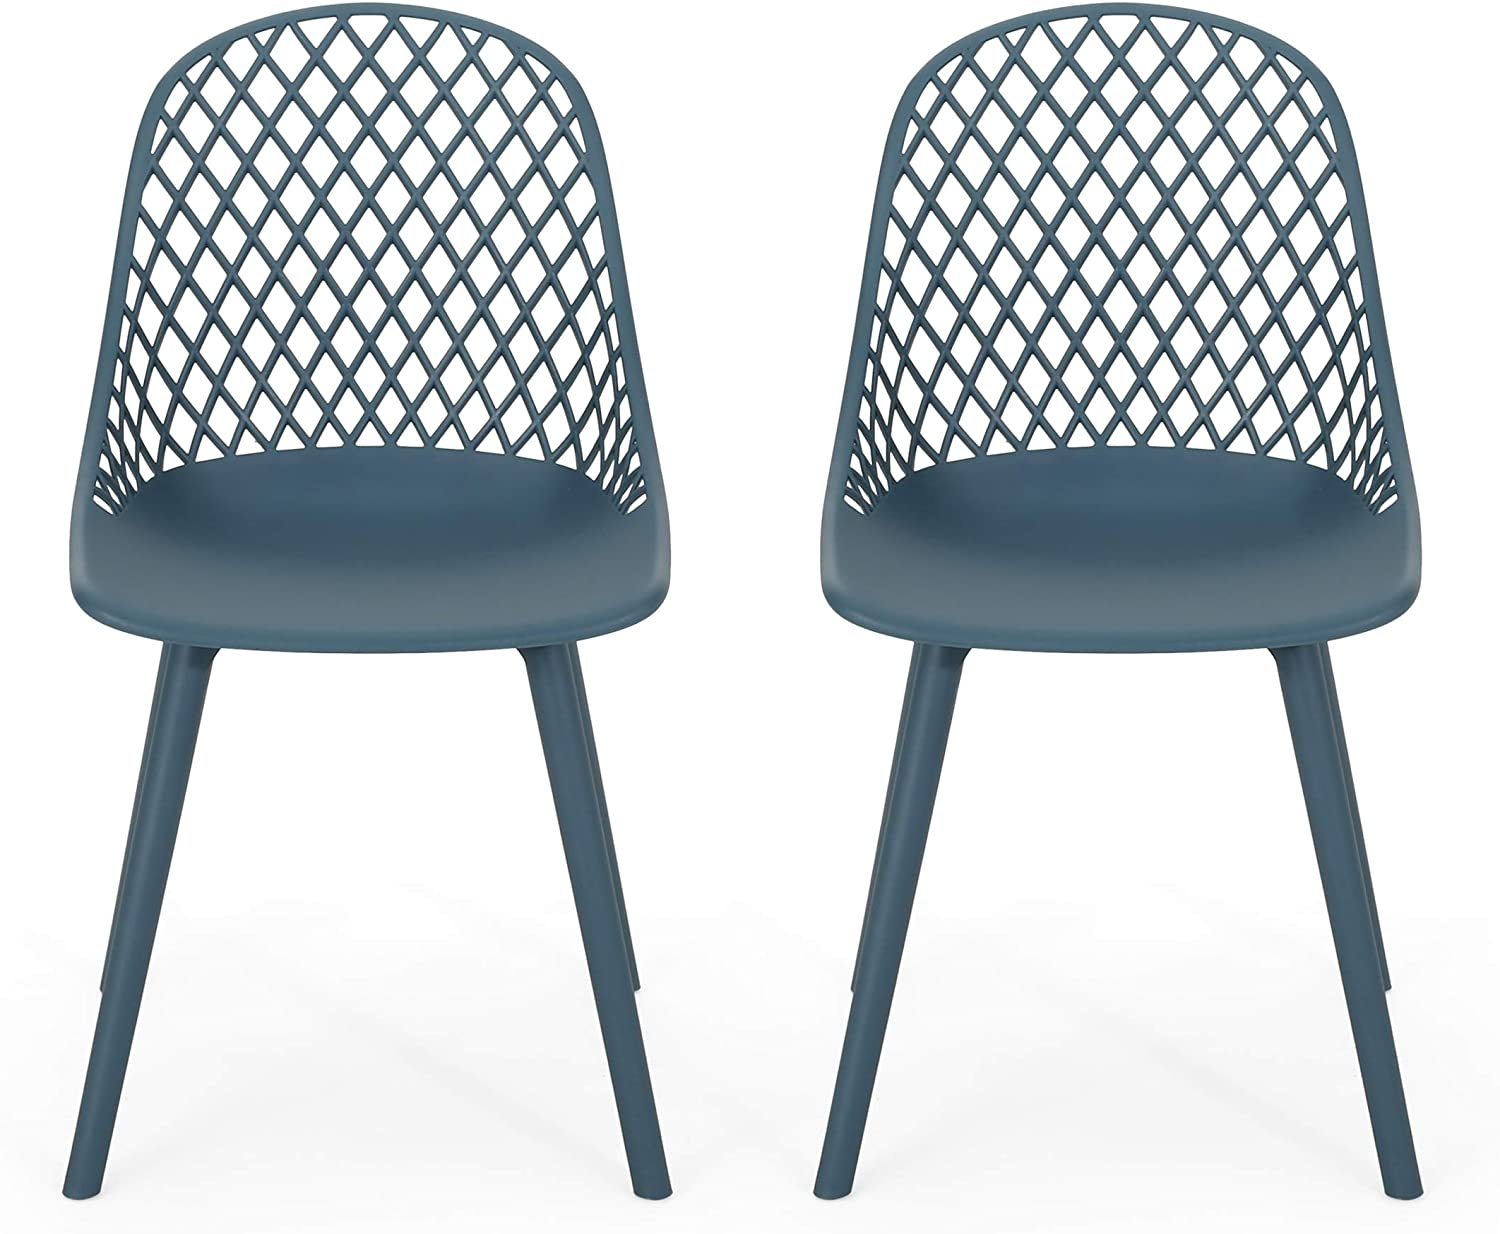 Christopher Knight Home 312477 Delora Outdoor Dining Chair (Set of 2), Green